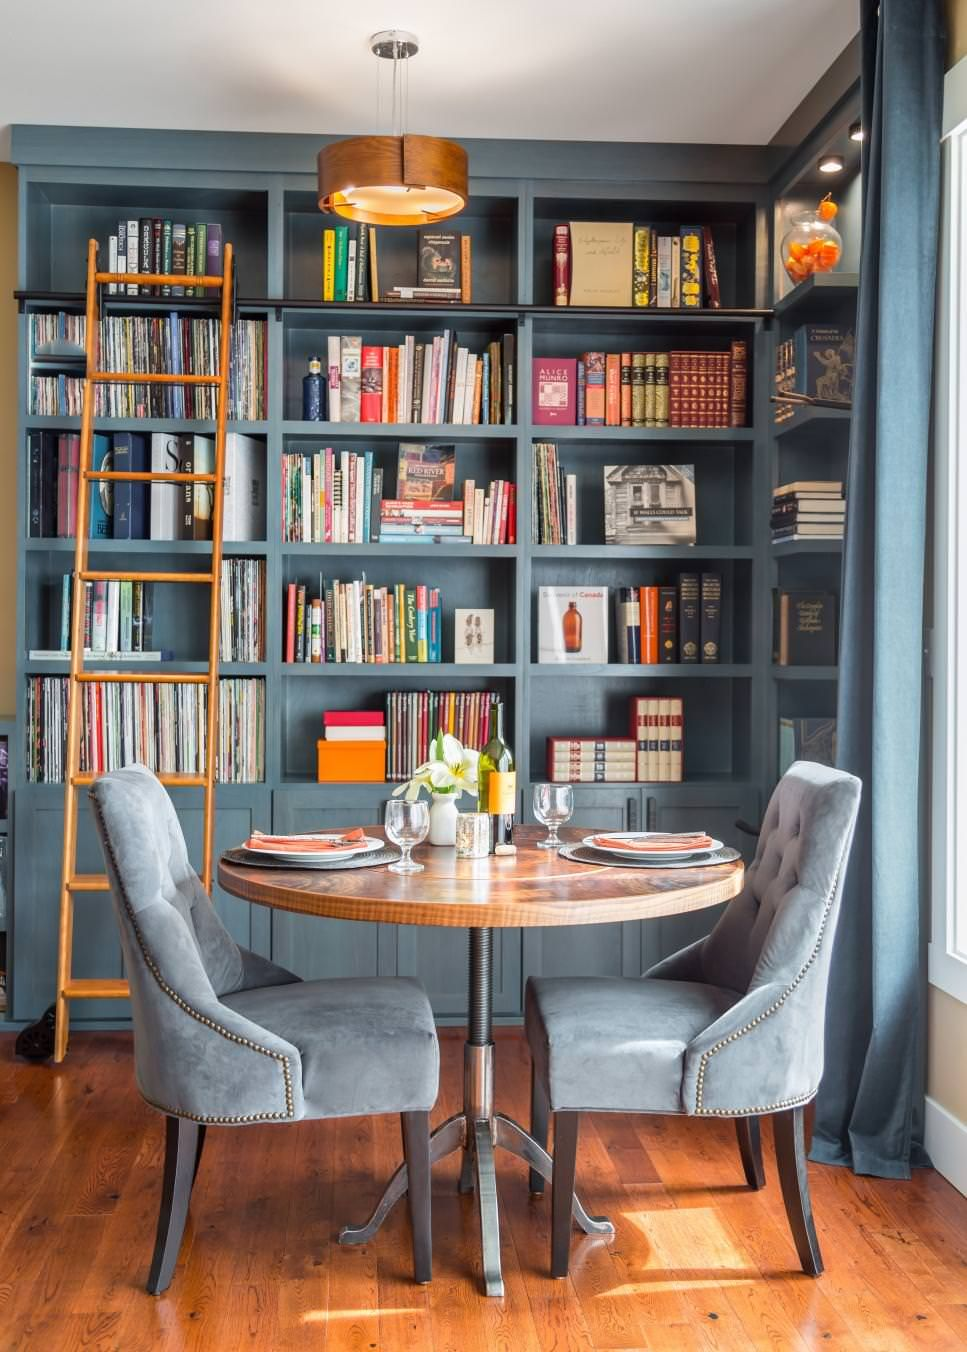 HGTV presents a gorgeous blue home library